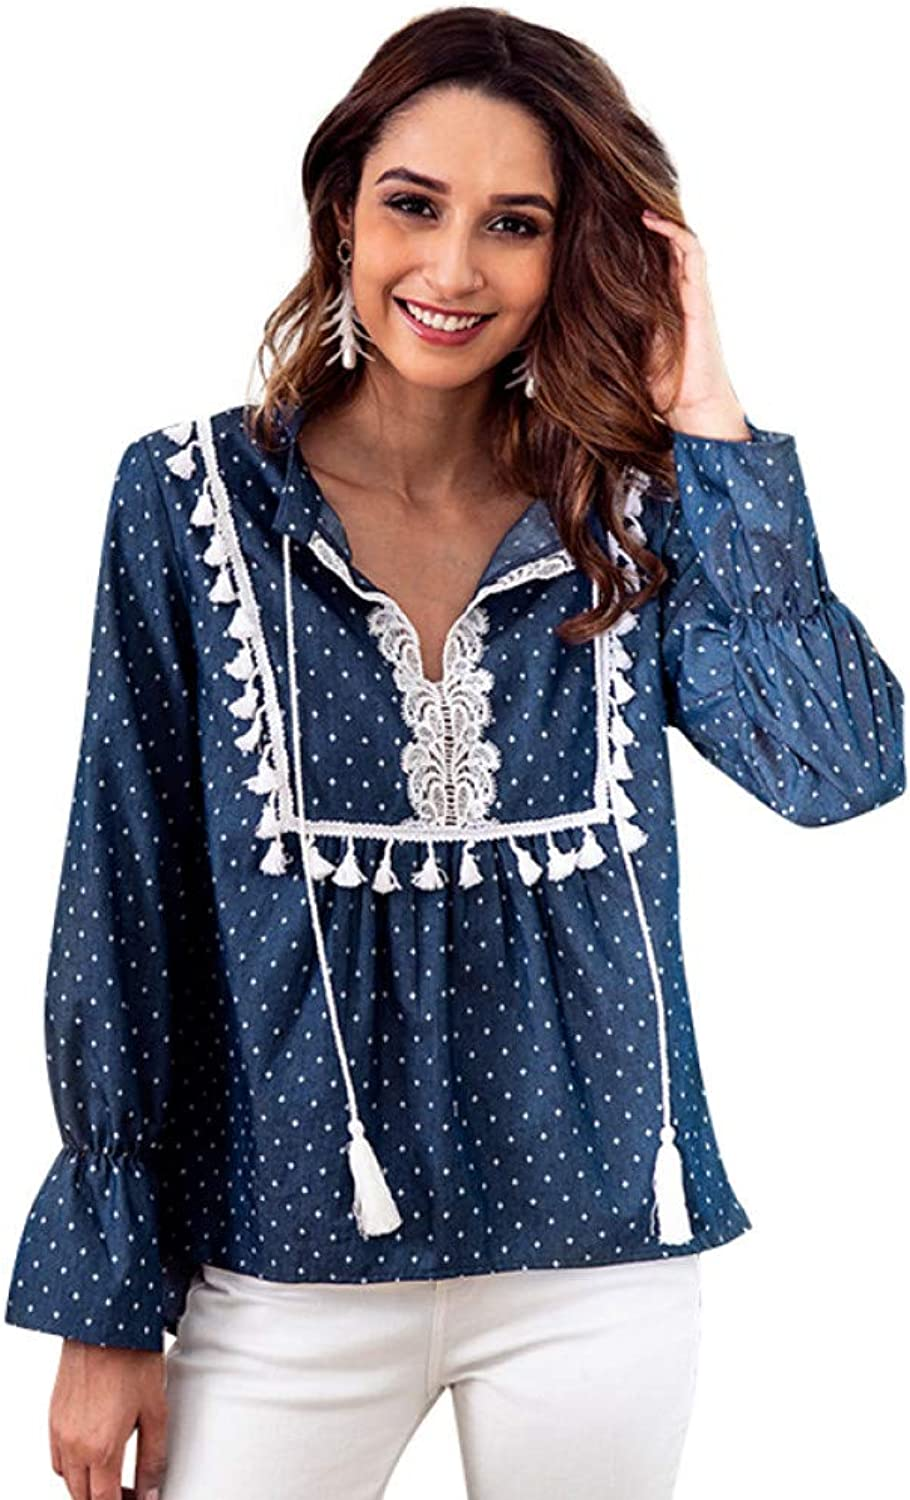 STYQLM Blouses Shirts Women Denim Blouse Dot Print Drawstring Lace Tassel V Neck Long Sleeve Casual Loose Boho